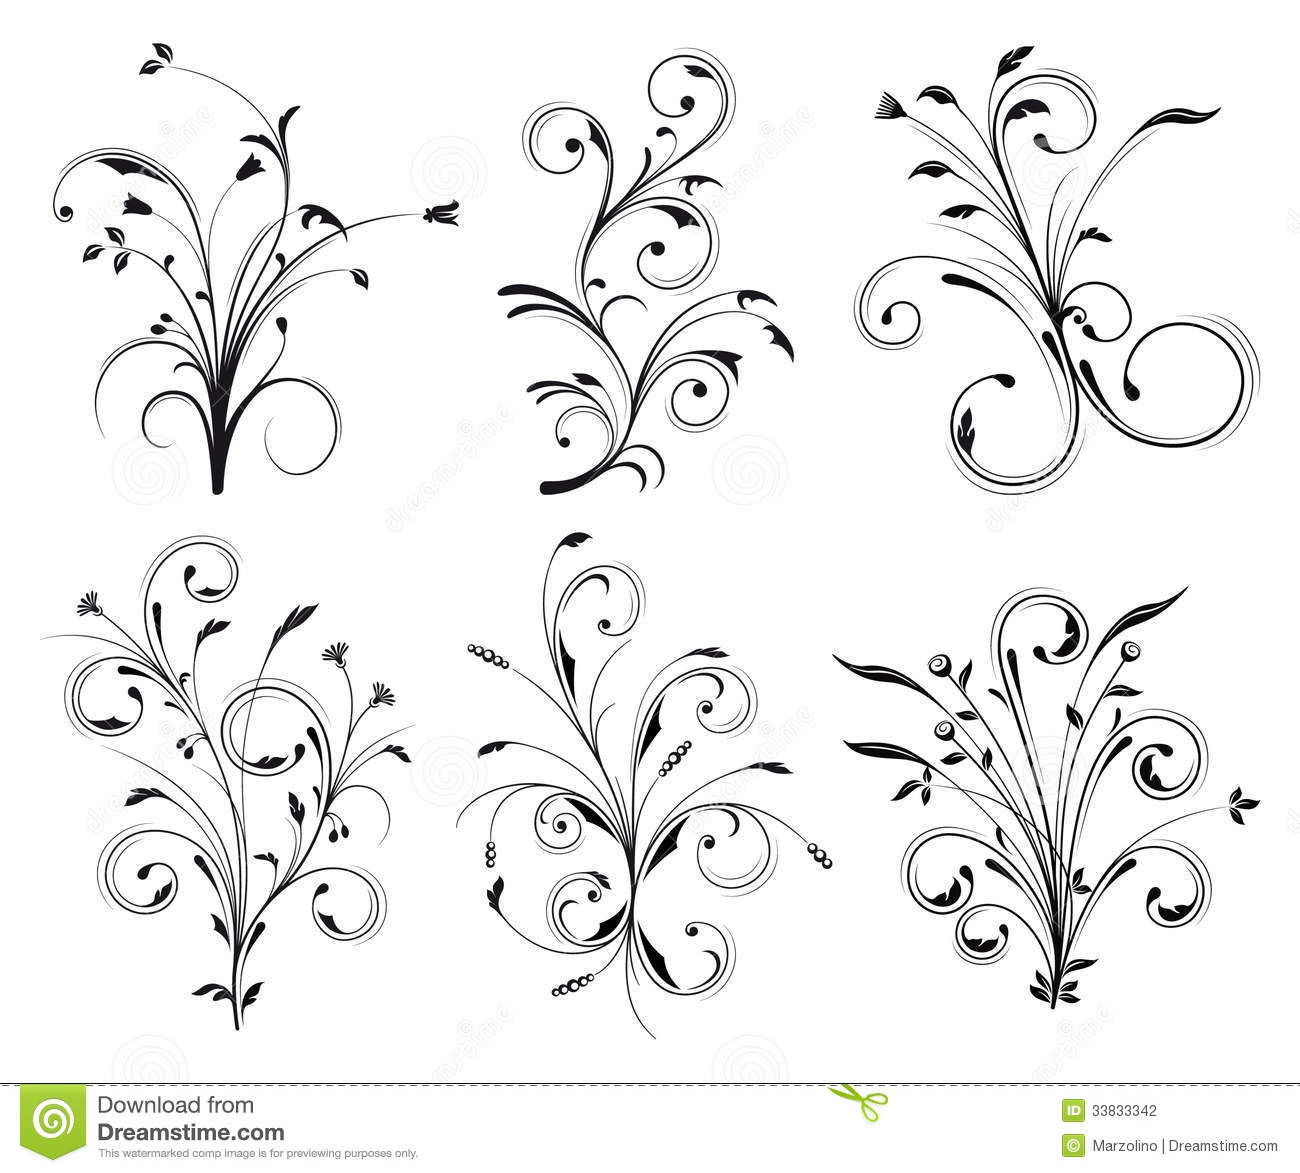 Floral Decorations floral decorations stock photography - image: 33833342